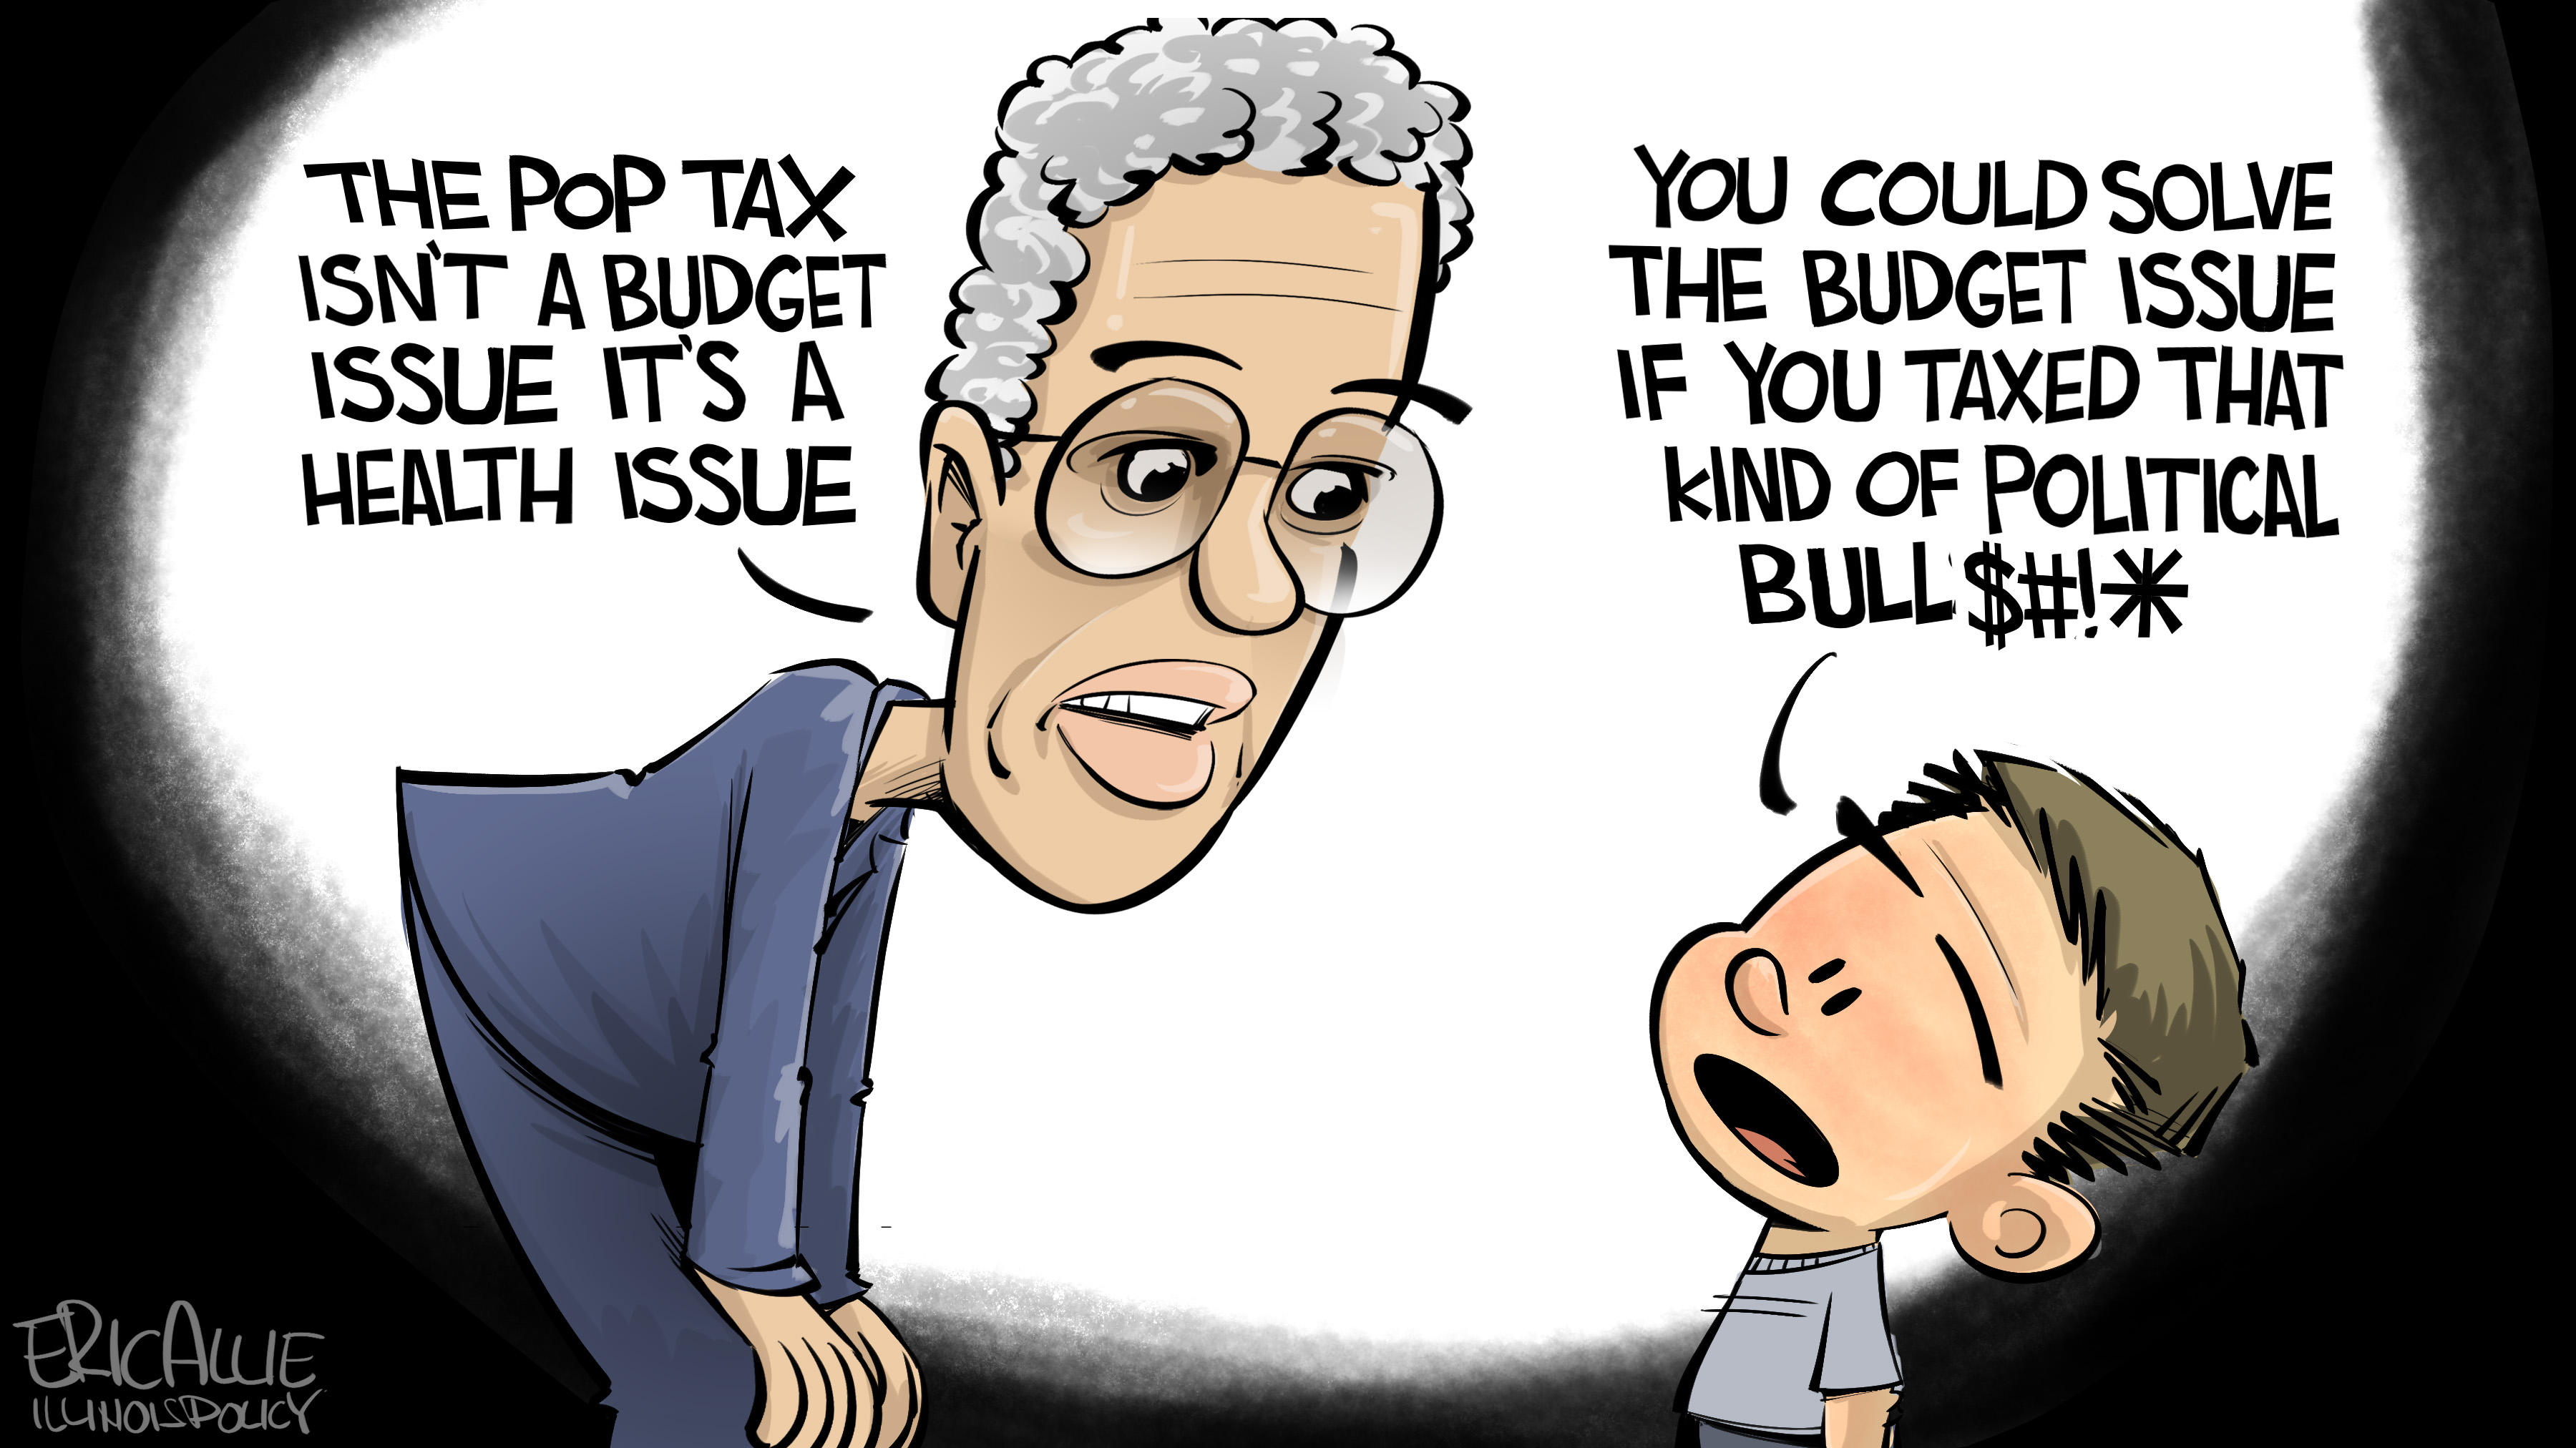 Preckwinkle's pop tax